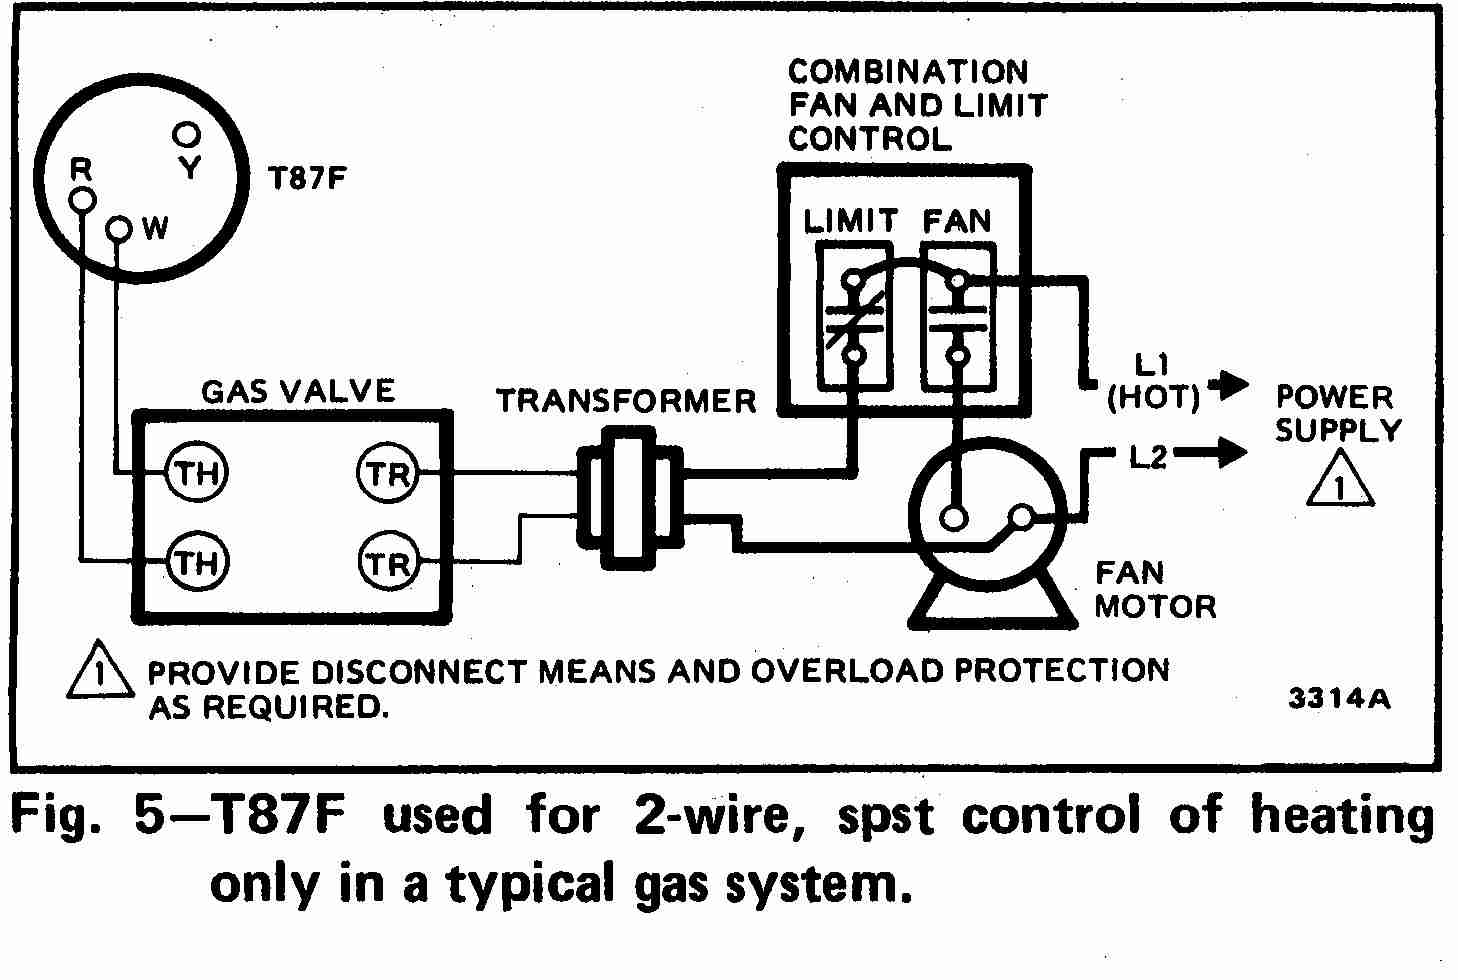 TT_T87F_0002_2Wg_DJF guide to wiring connections for room thermostats home thermostat wiring diagram at cos-gaming.co